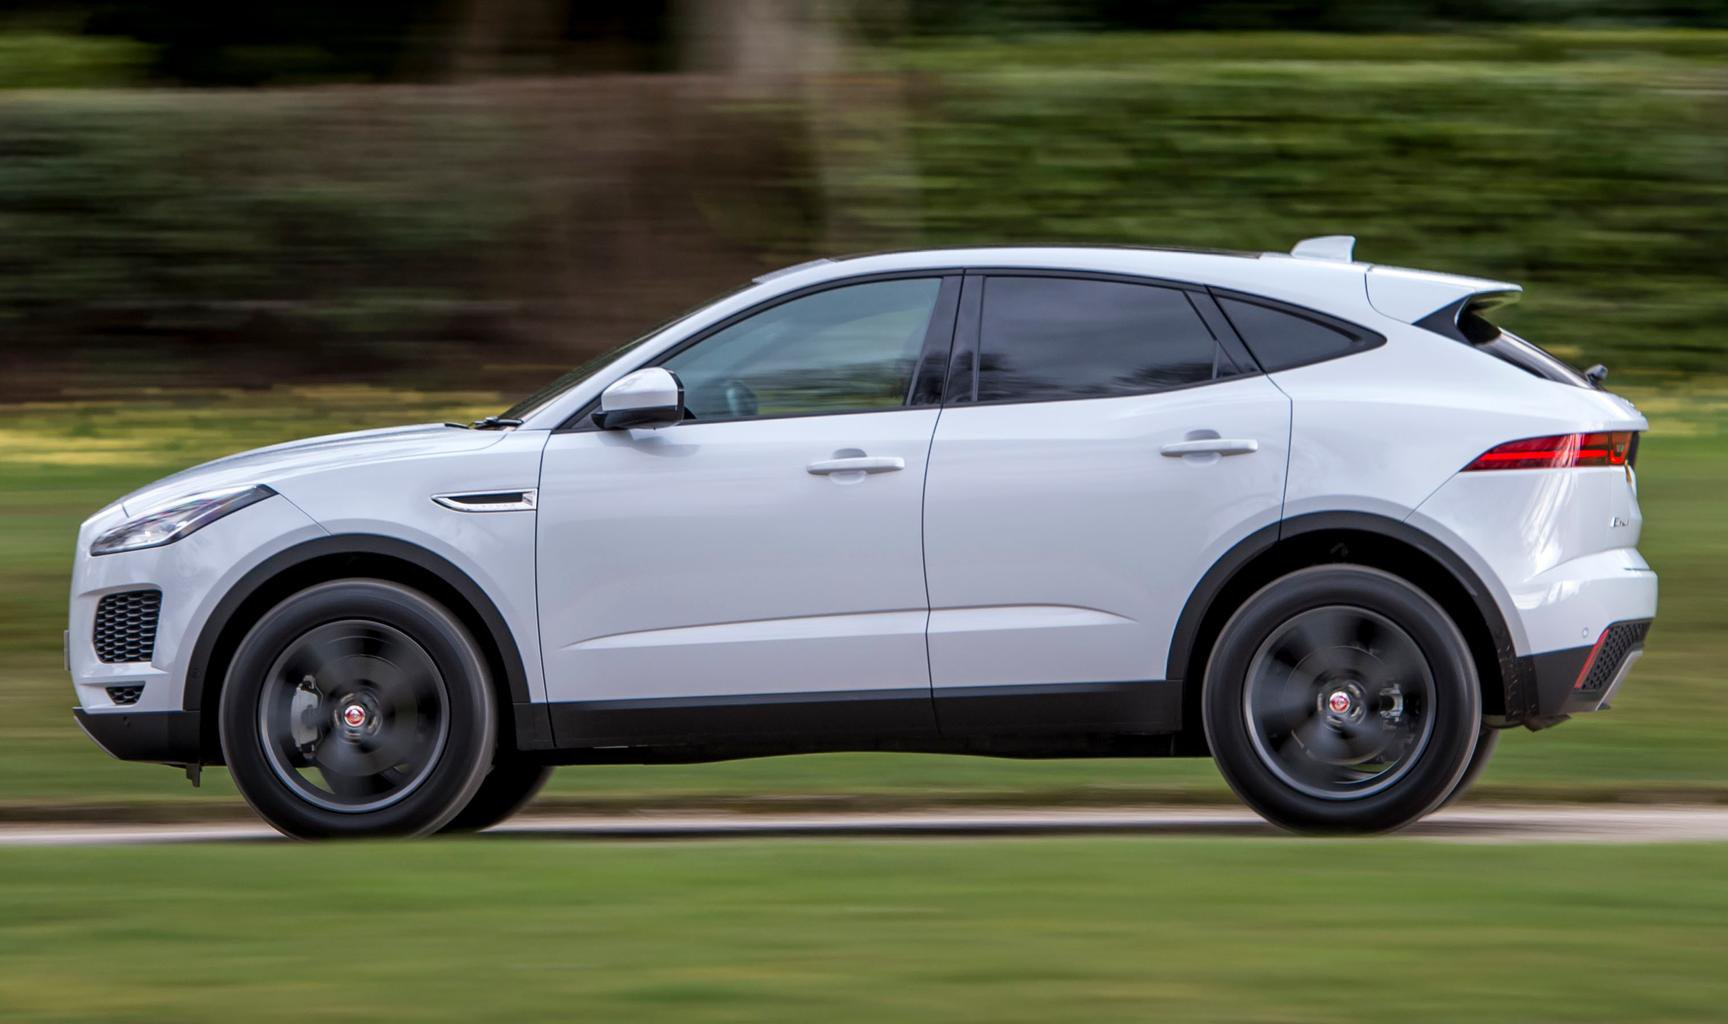 2018 Jaguar E-Pace 2.0 D150 review - verdict